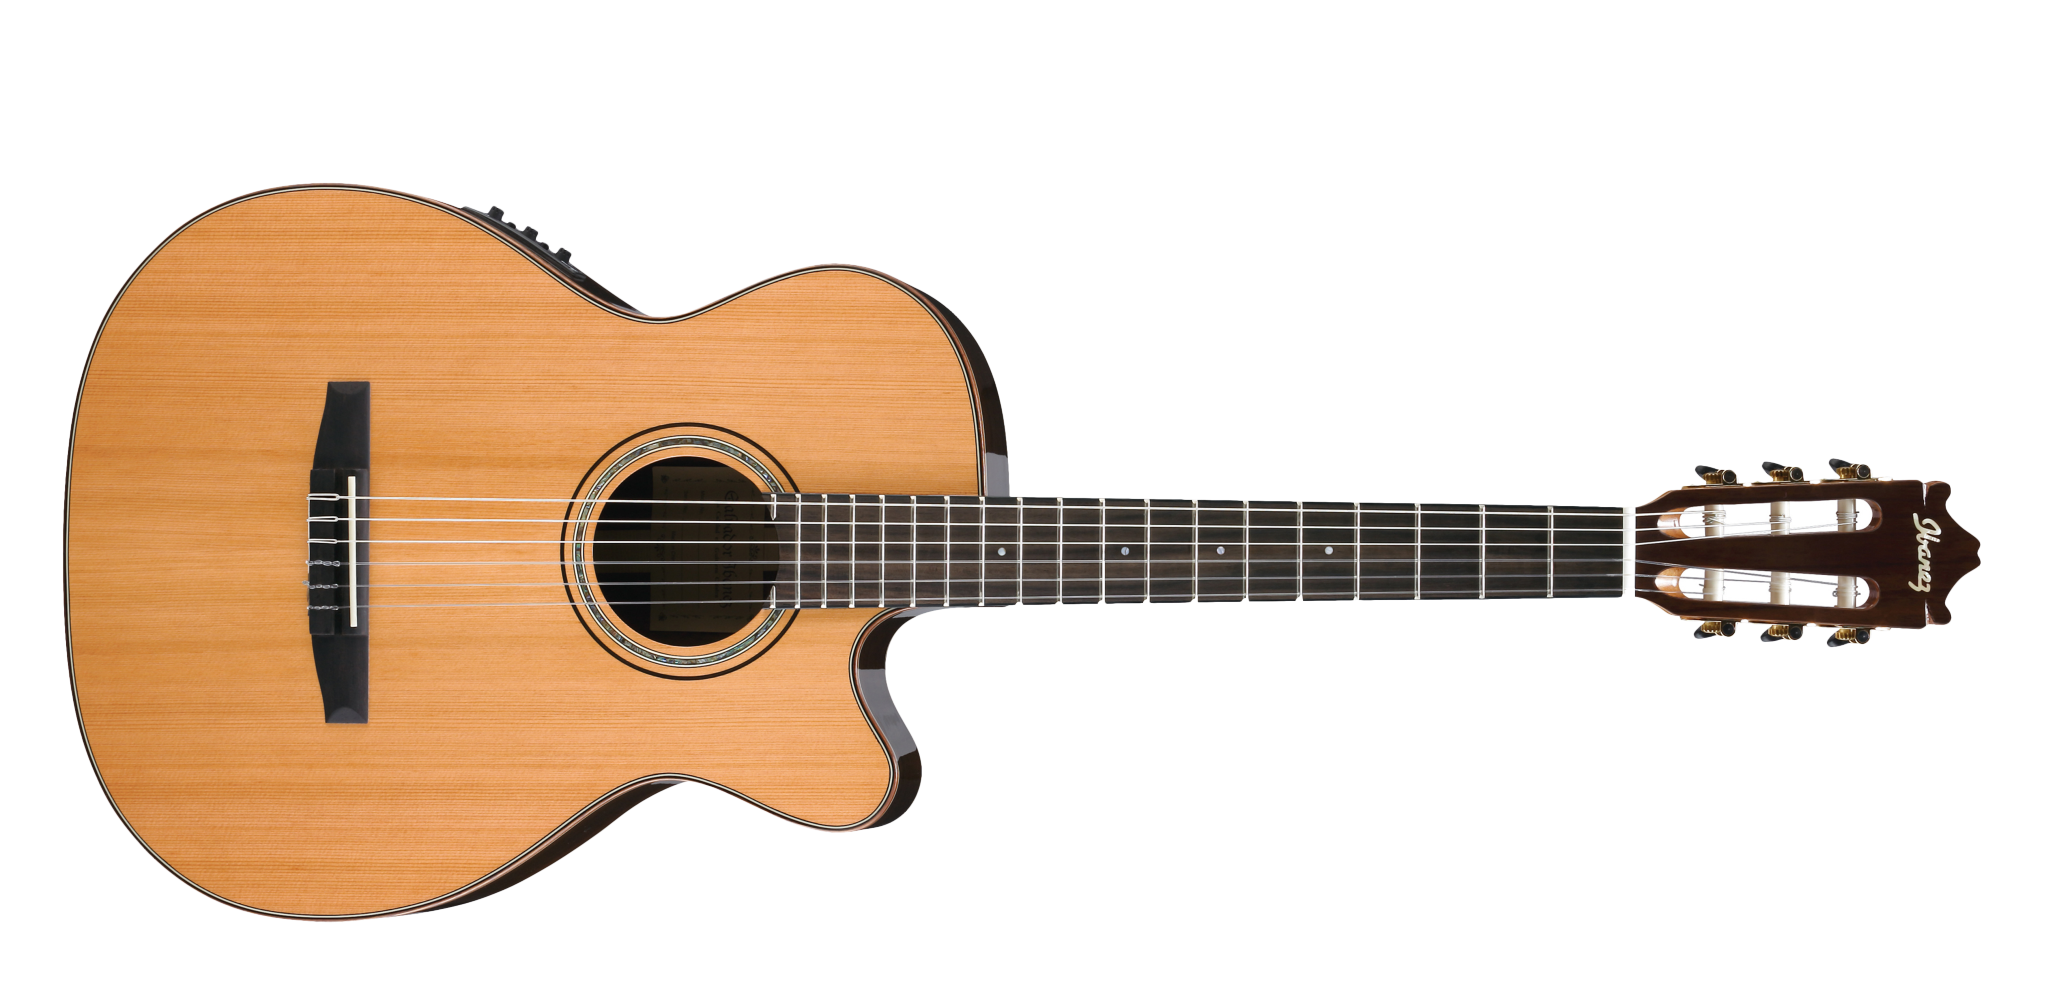 acoustic guitar png - Google Search   Music Art ...